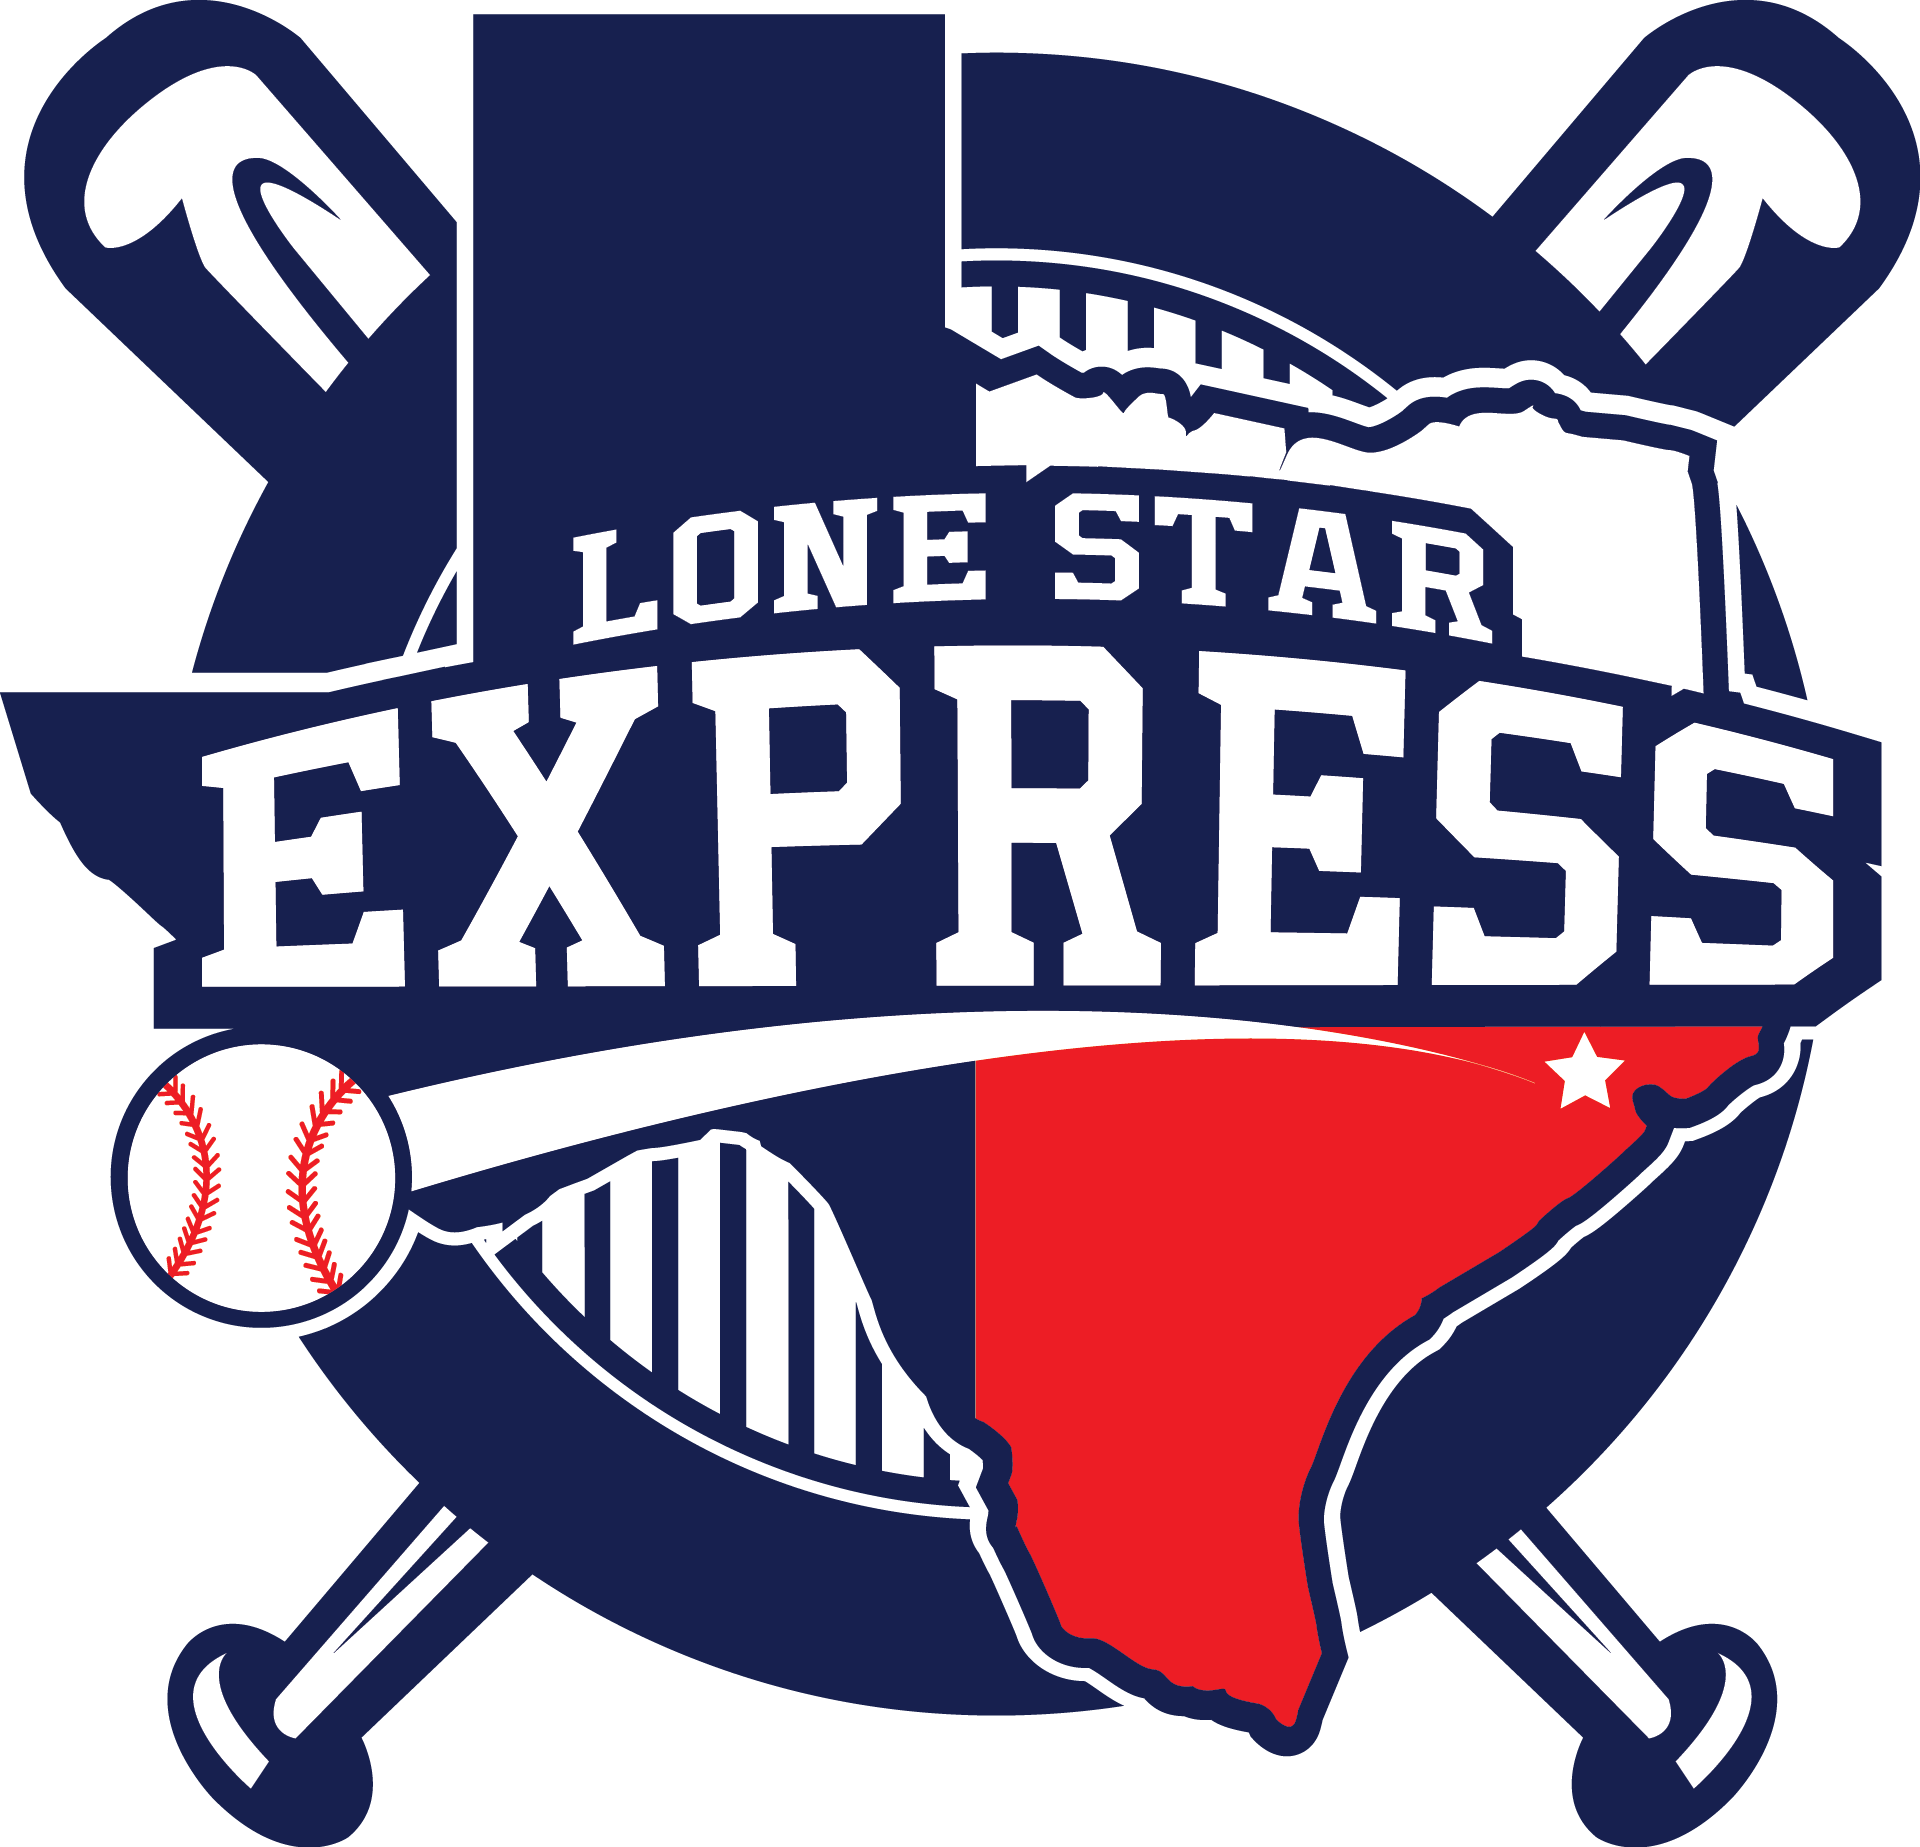 All star baseball clipart graphic library LONE STAR EXPRESS 9U graphic library